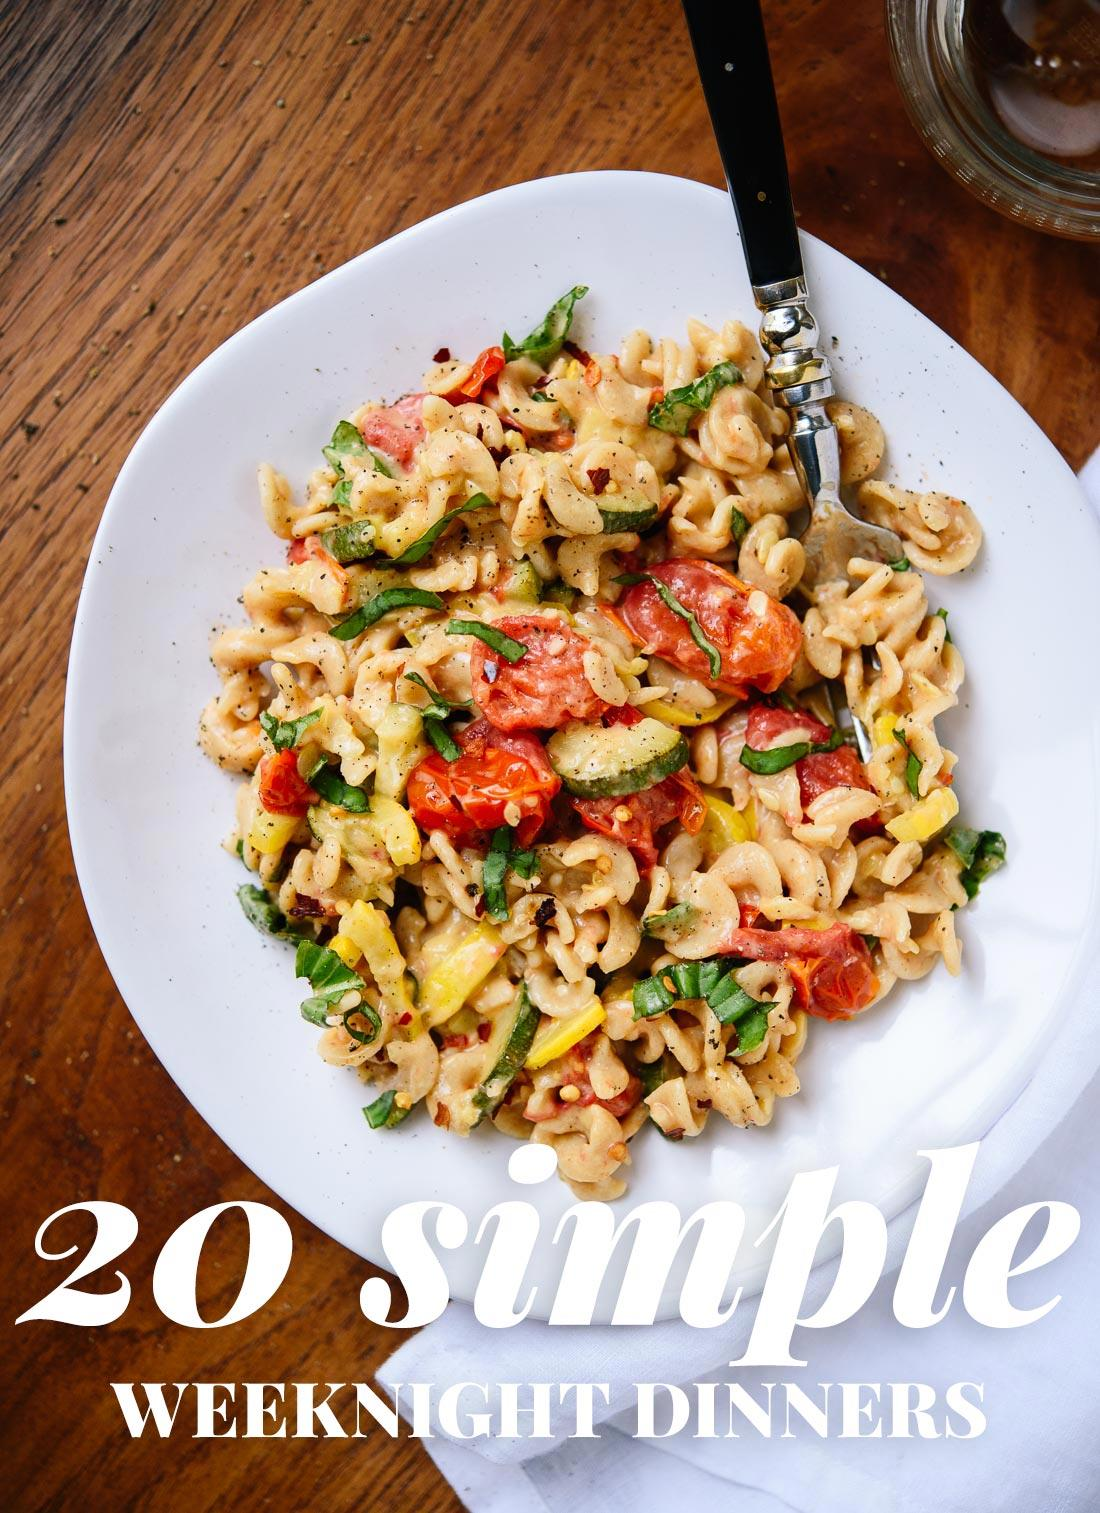 Simple weeknight dinners